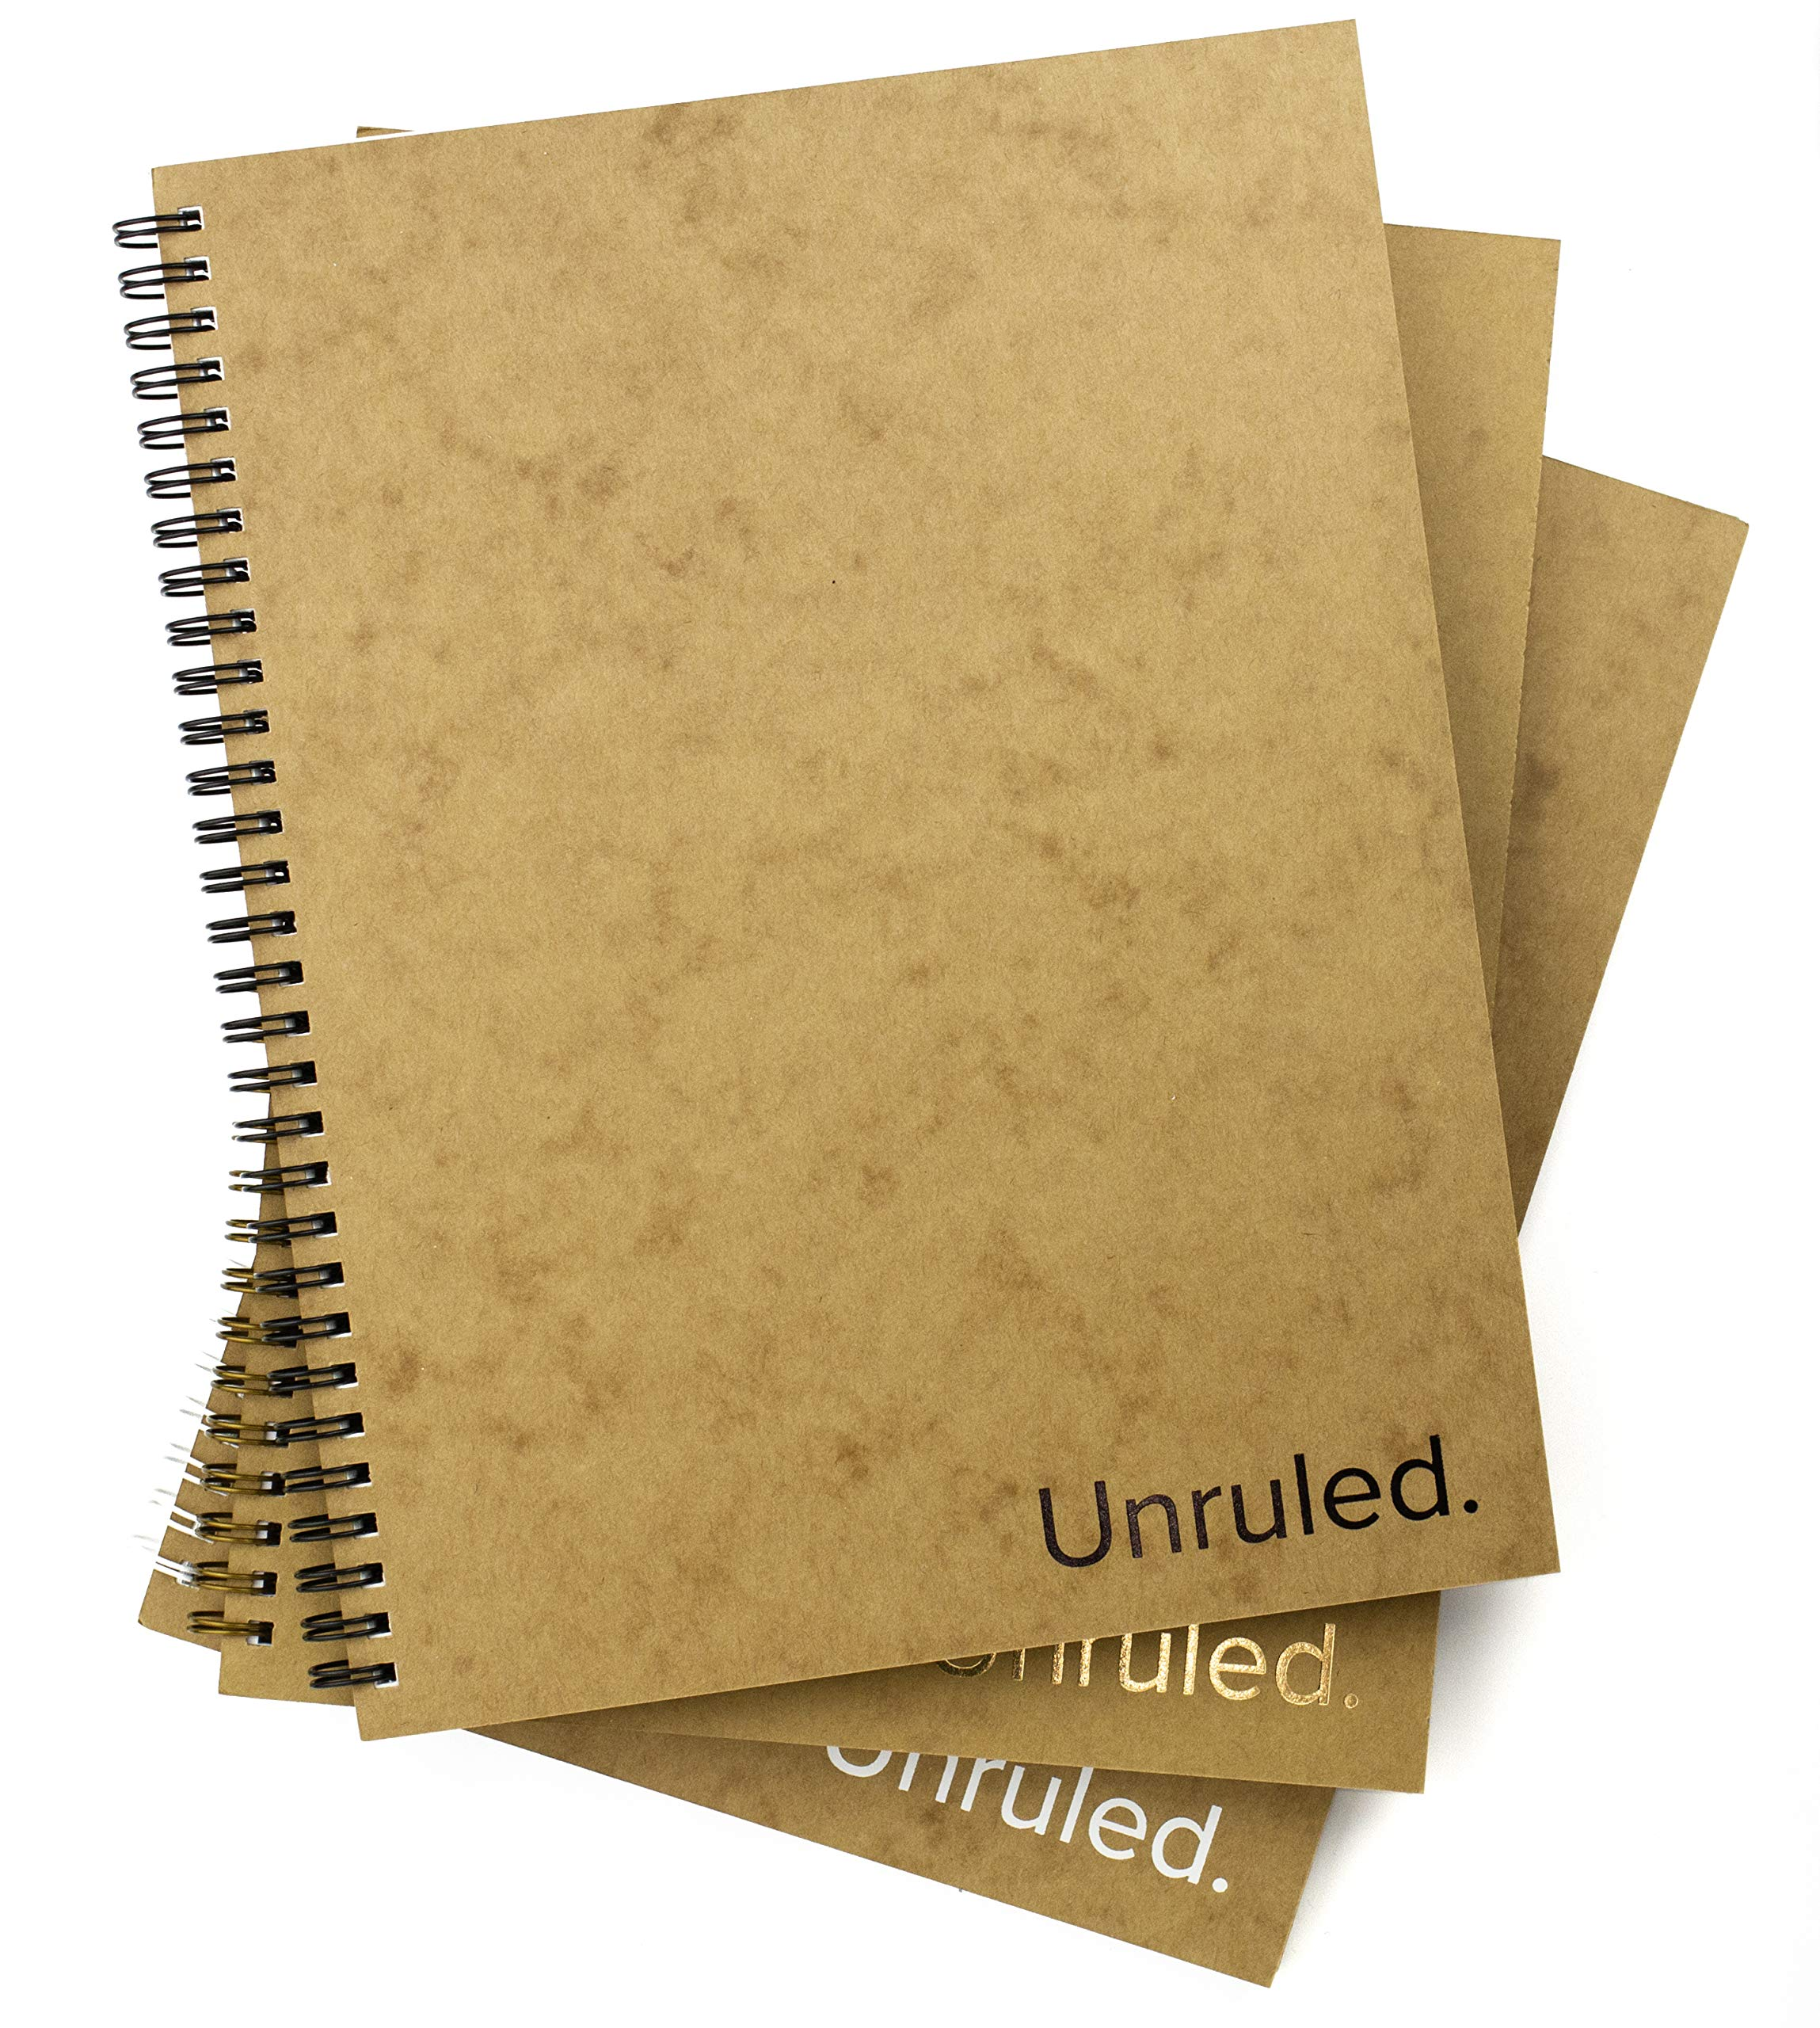 Unruled Notebook (3 Pack): Environmentally Sustainable, Designed by College Students for Visual notetaking, 60 Unlined Perforated Sheets, 8 x 10.5 inches (Combo) by Unruled.